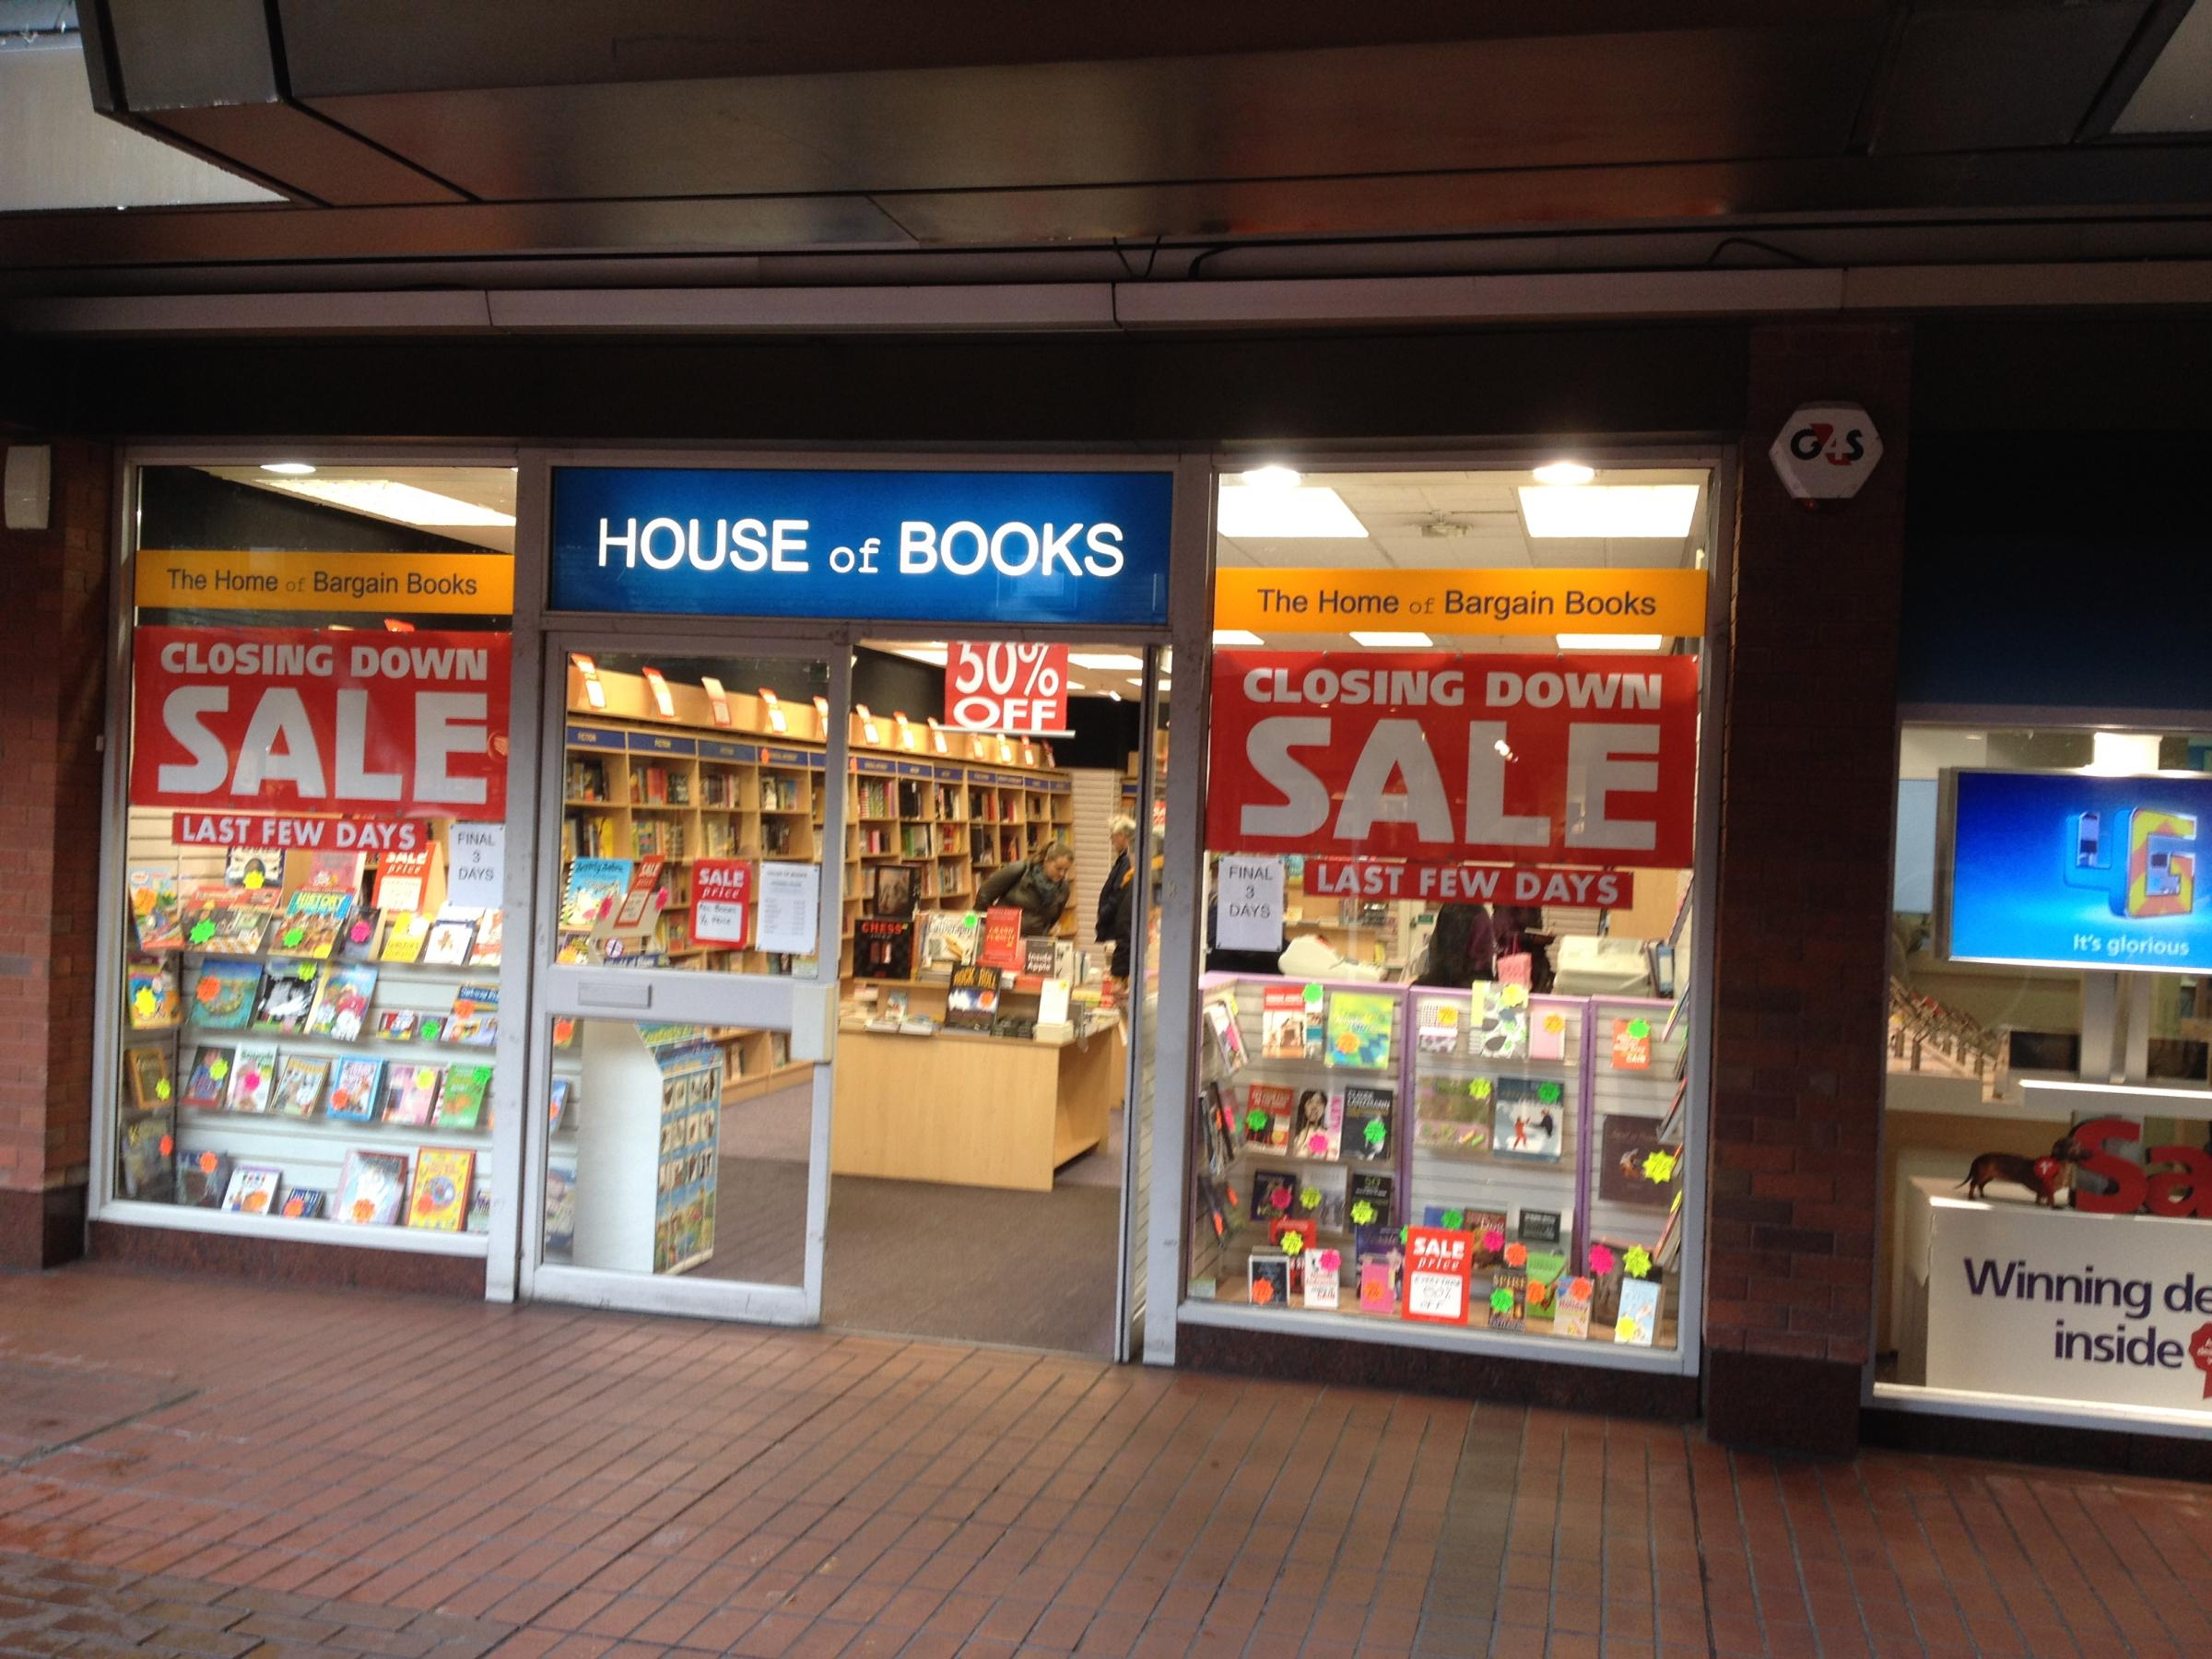 House of Books in Enfield